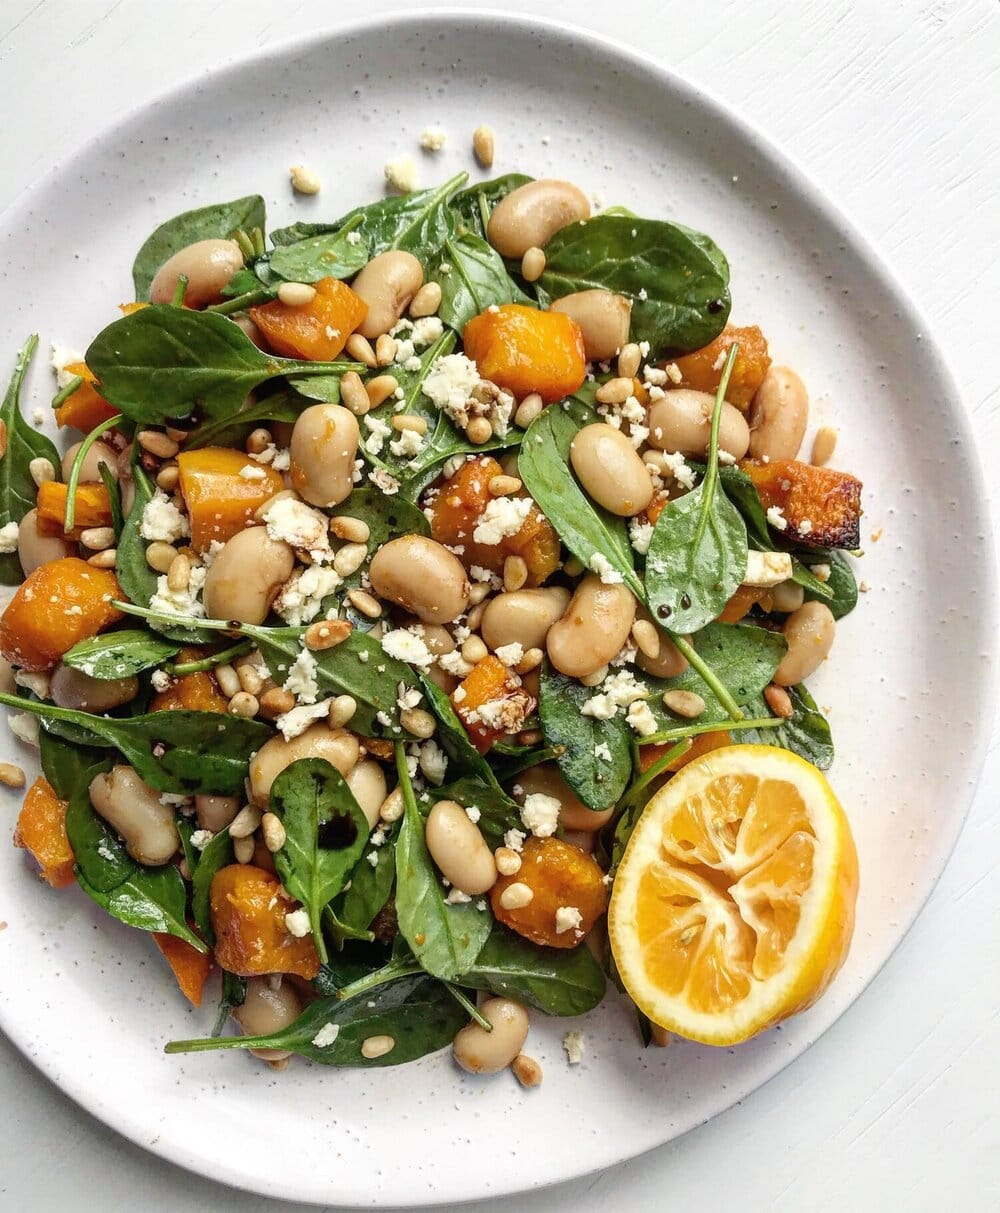 A close up of a roasted honey-pumpkin salad tossed wit spinach, white beans, feta and pine nuts. A half lemon is a garnish.